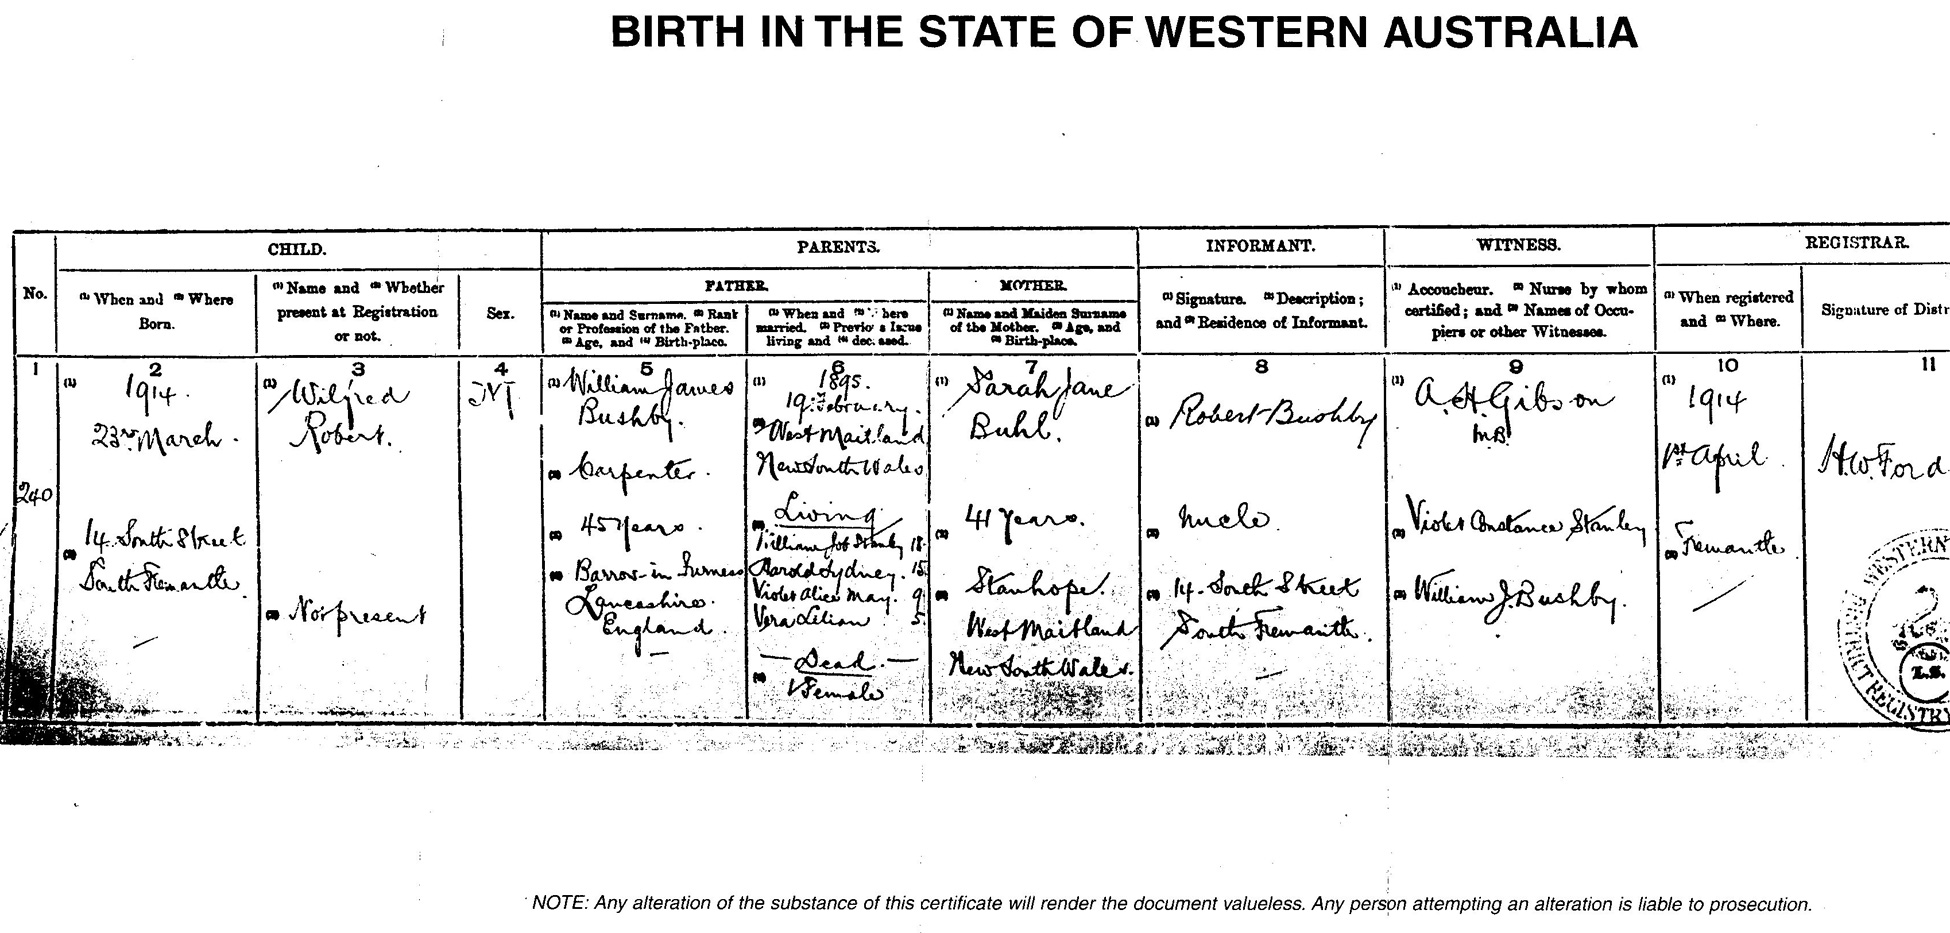 Documents wilfred robert bushby birth certificate south documents wilfred robert bushby birth certificate south fremantle western australia craig and marjorie walsh geneology website aiddatafo Gallery